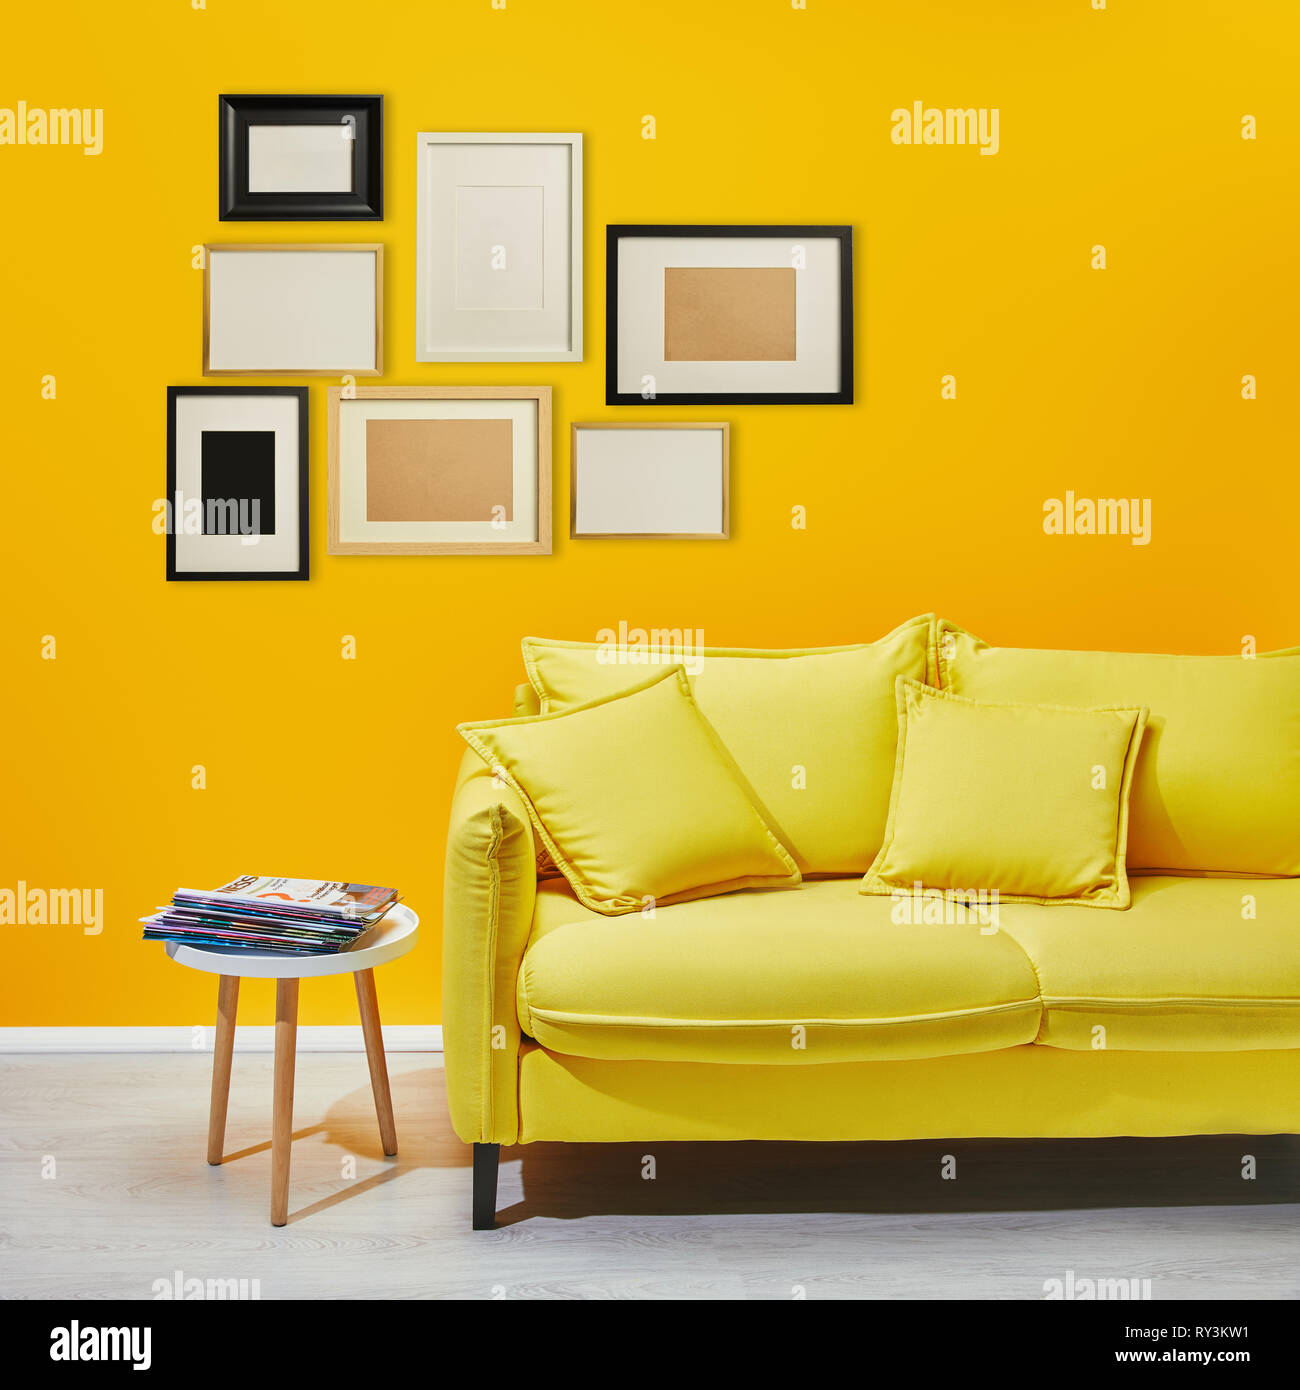 Picture of: Coffee Table Standing Near Modern Yellow Sofa Near Decorative Frames Hanging On Wall Stock Photo Alamy